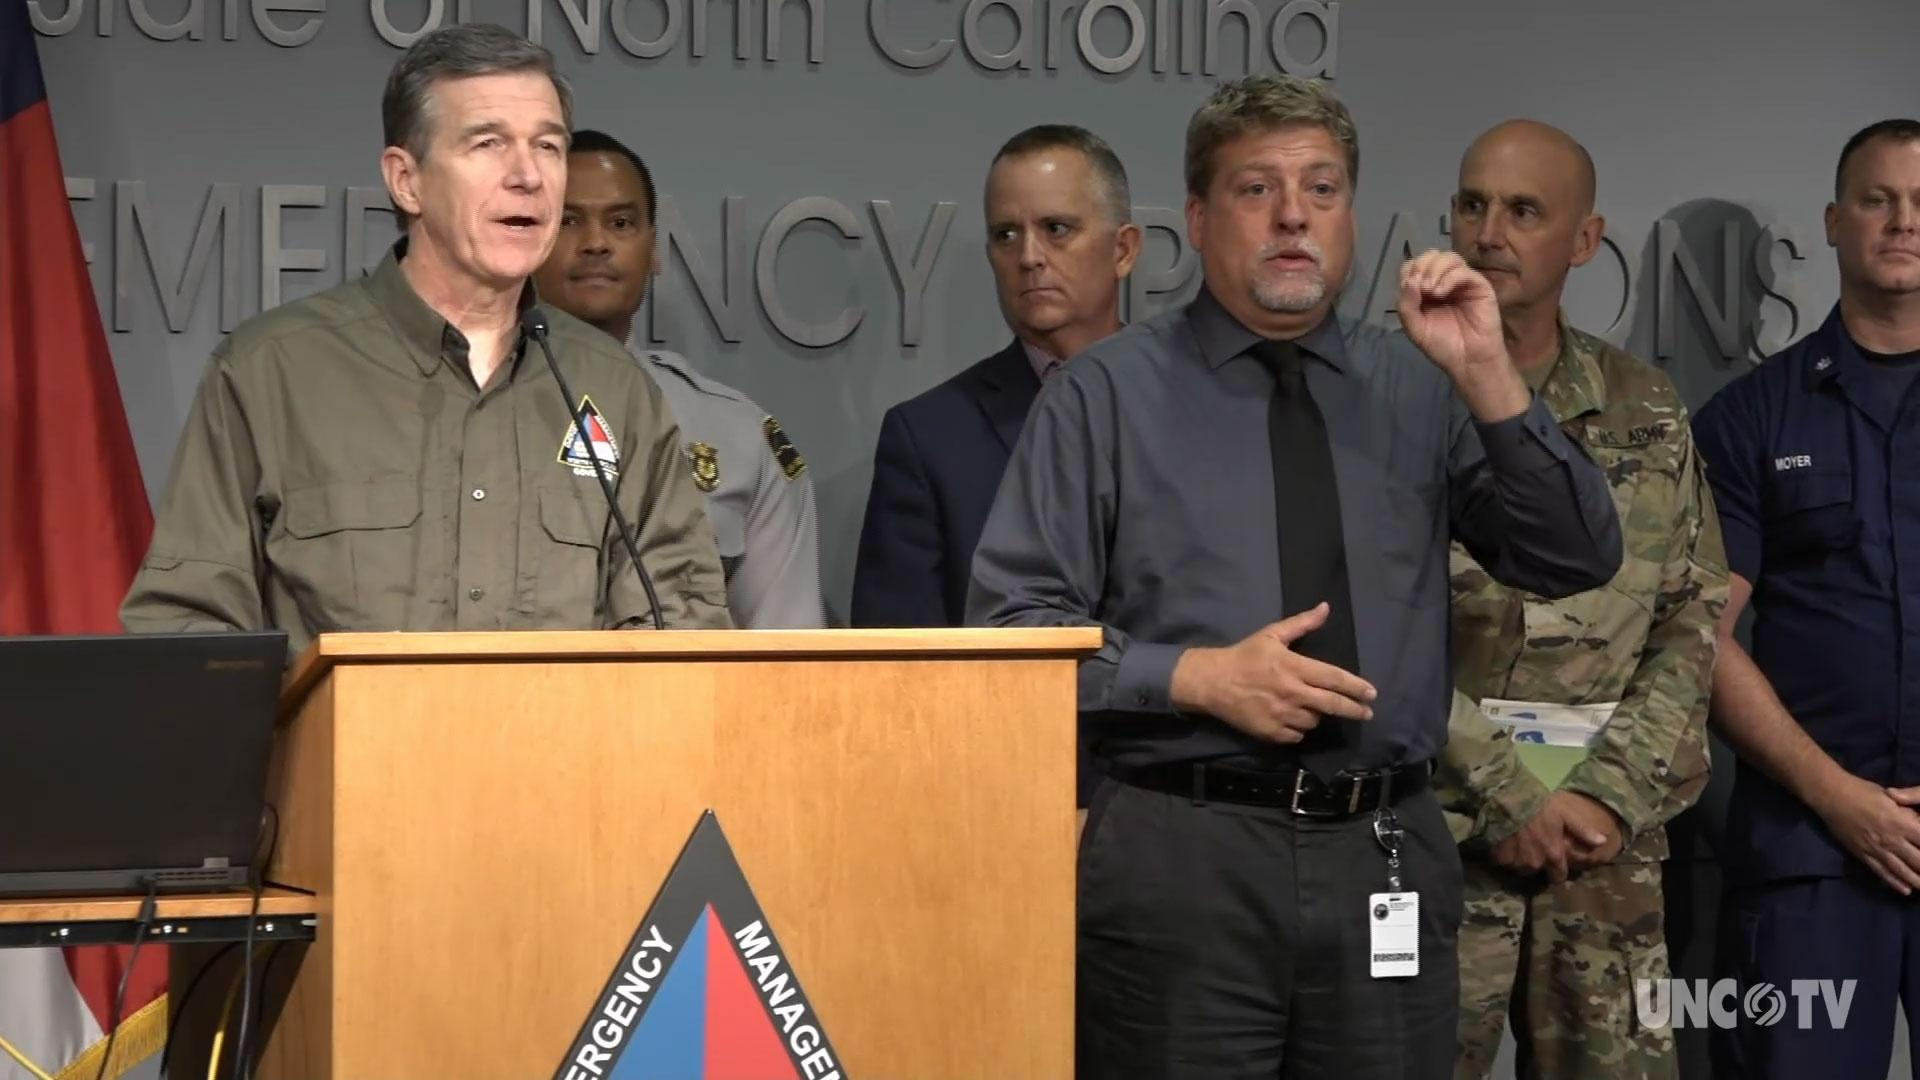 NC Gov. Cooper: Weather Briefing 4:00 PM 09/05/19